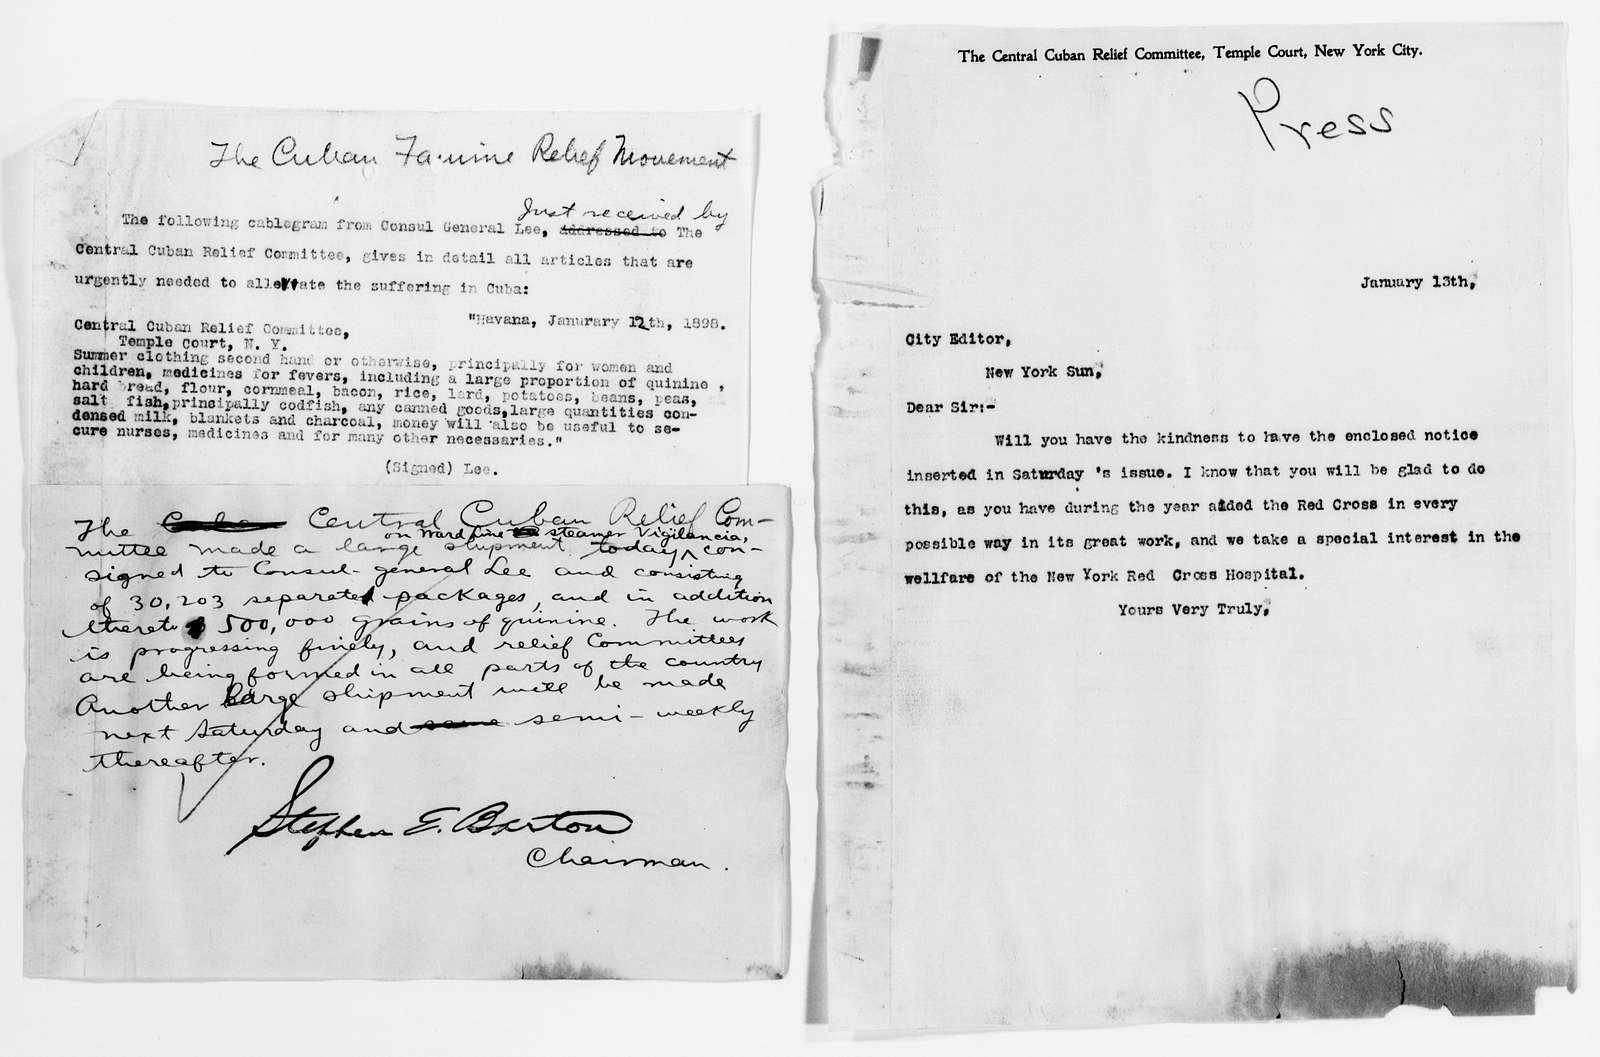 Clara Barton Papers: Red Cross File, 1863-1957; American National Red Cross, 1878-1957; Relief operations; Spanish-American War; News coverage; Press copy, letters and press releases; 1898-1899, undated